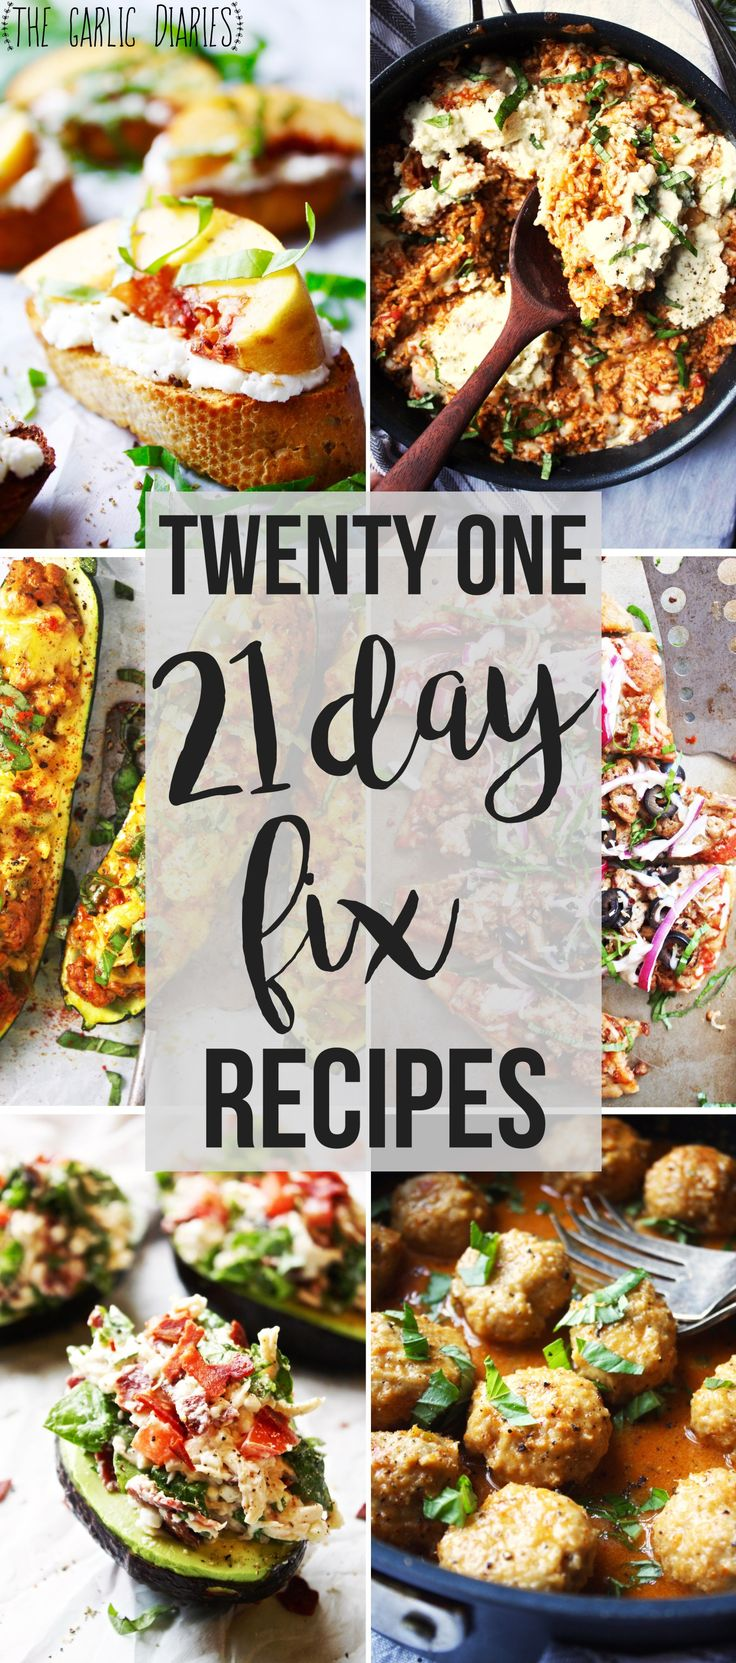 Twenty One 21 Day Fix Recipes- Try Unstuffed Pepper Skillet and Pizza Recipes